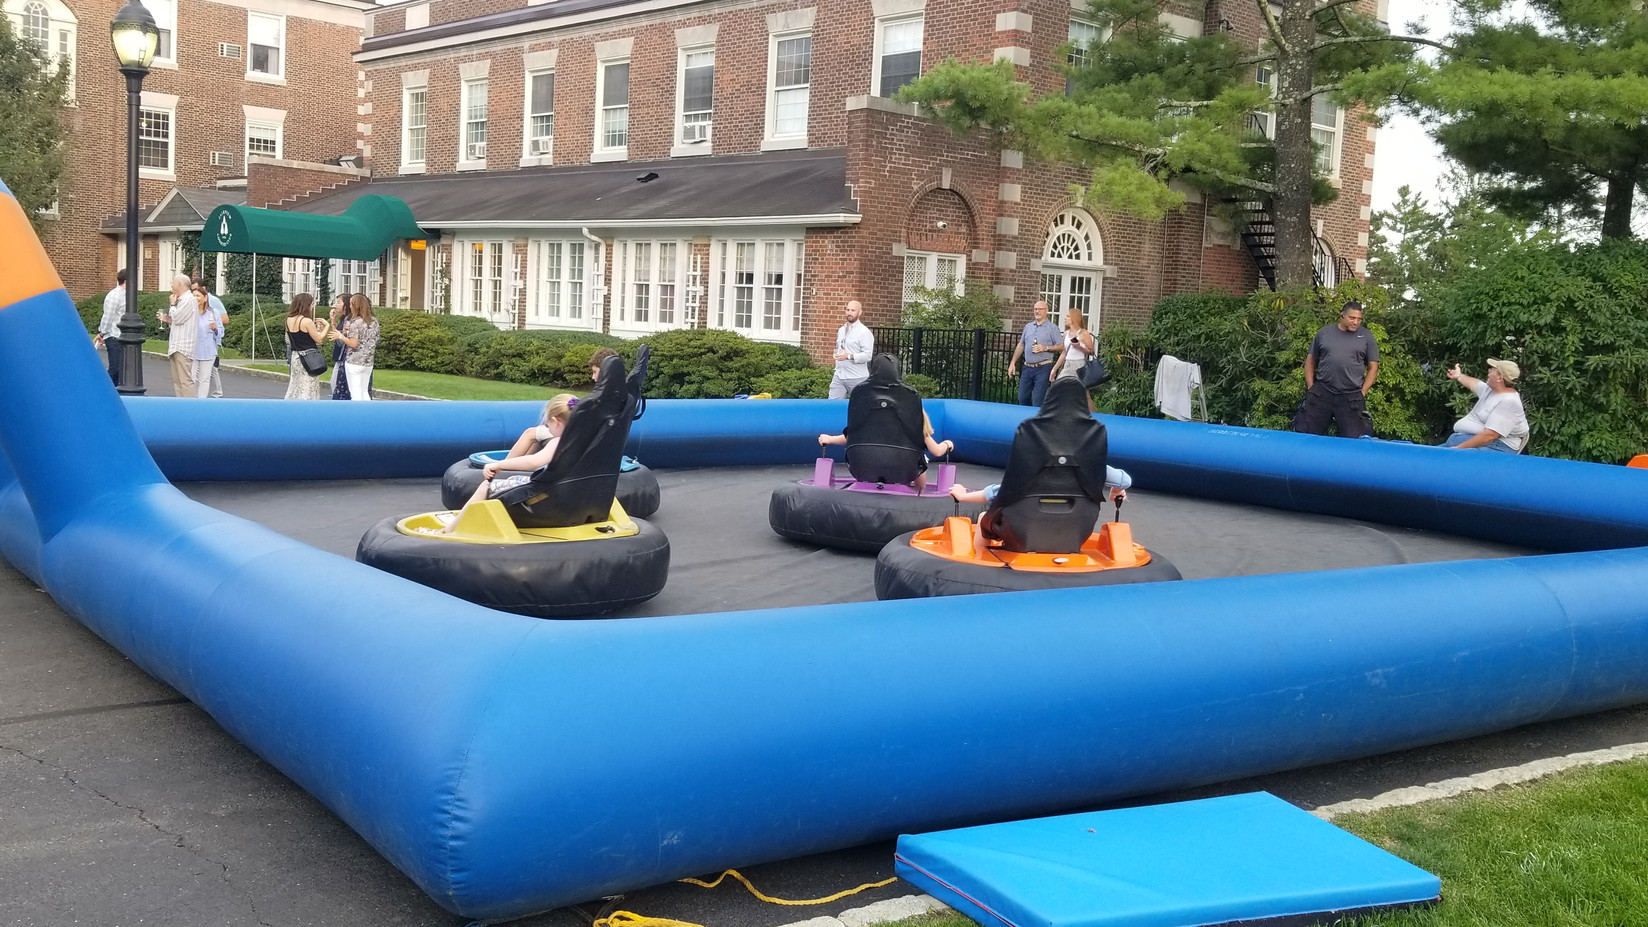 Bumper-Cars-For-Rent-At-Events.jpg